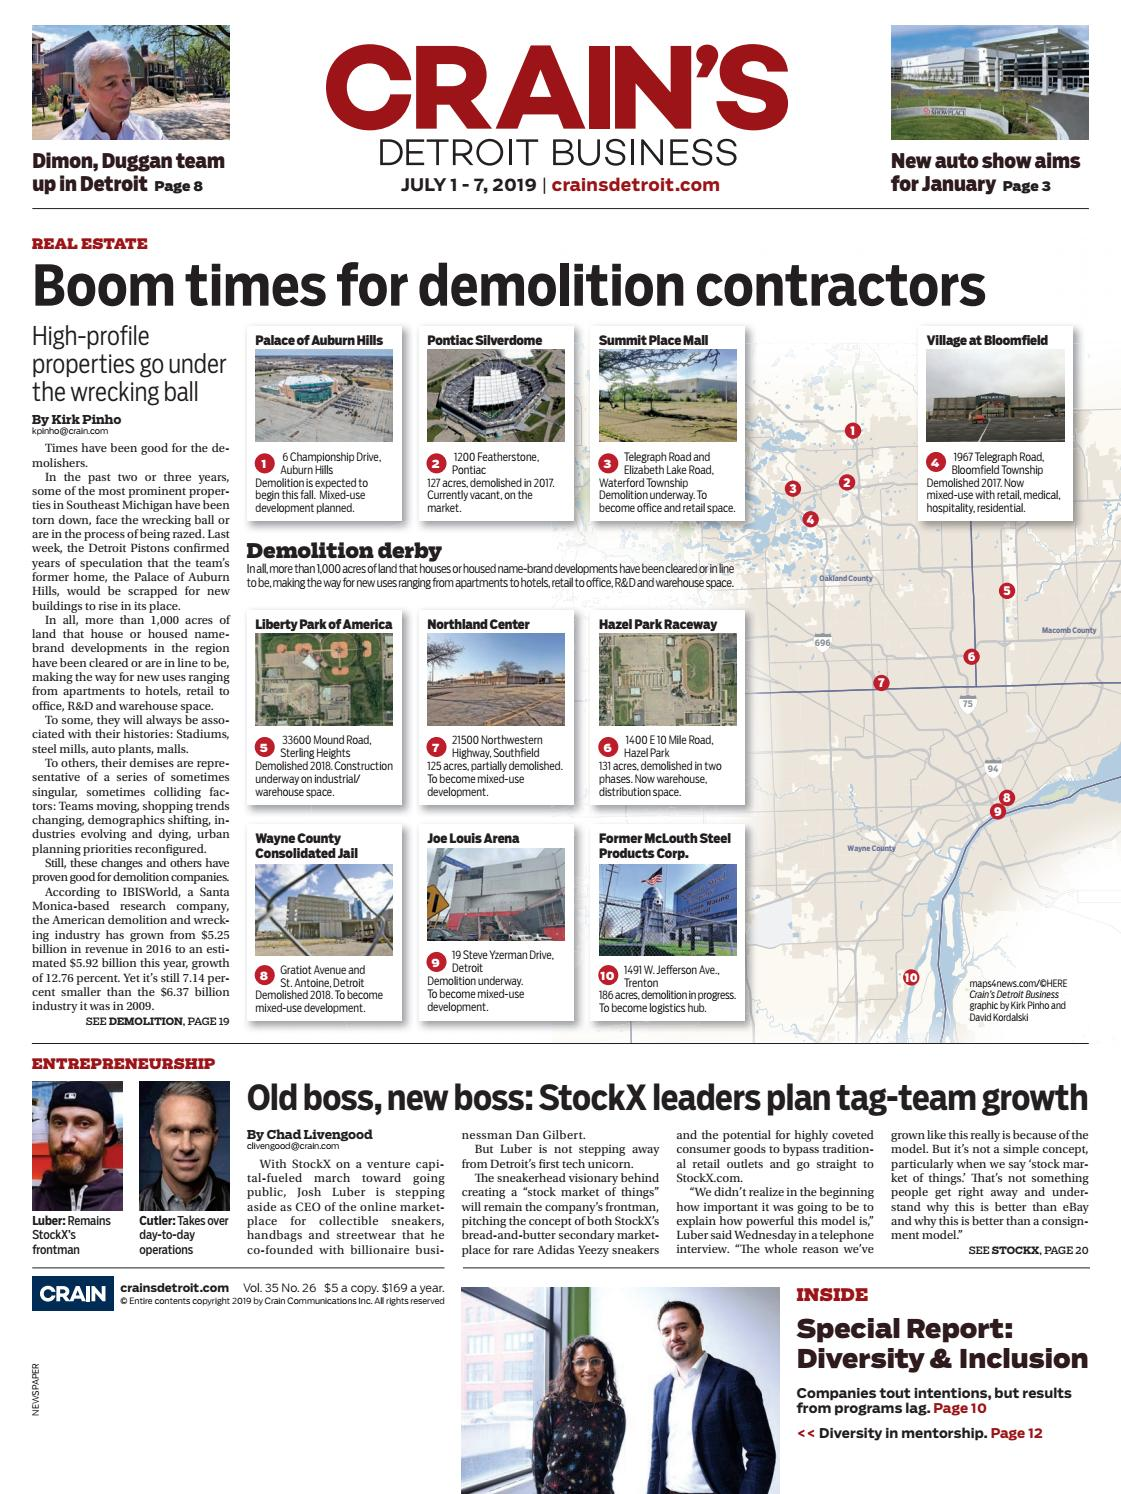 Crain's Detroit Business, July 1, 2019 issue by Crain's